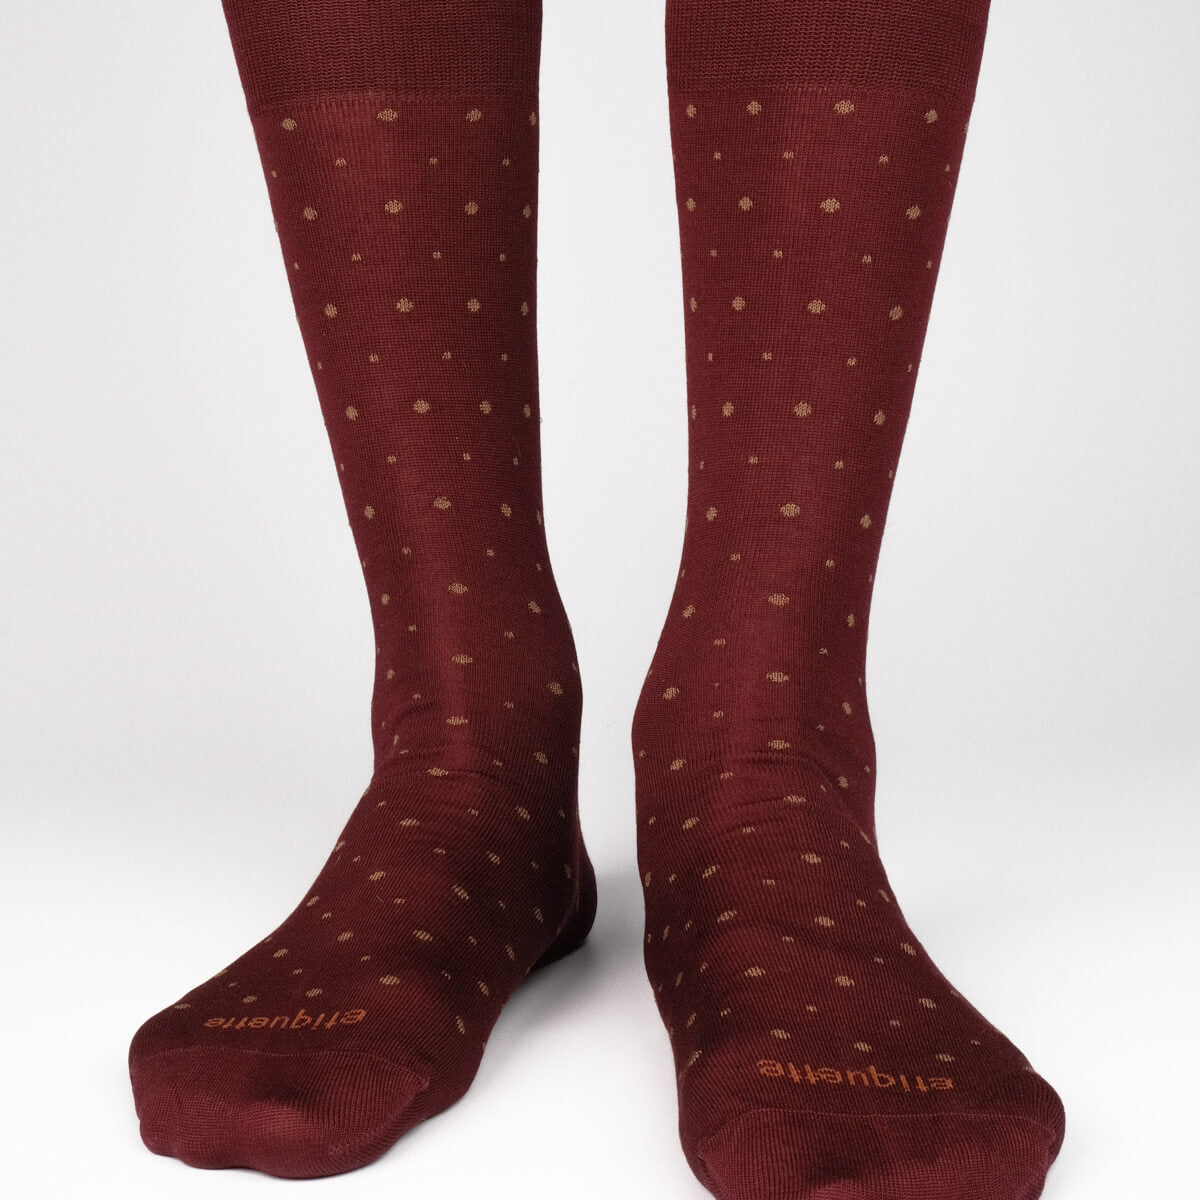 Mens Socks - Shades of Burgundy Men's Socks Gift Box - Bordeaux⎪Etiquette Clothiers